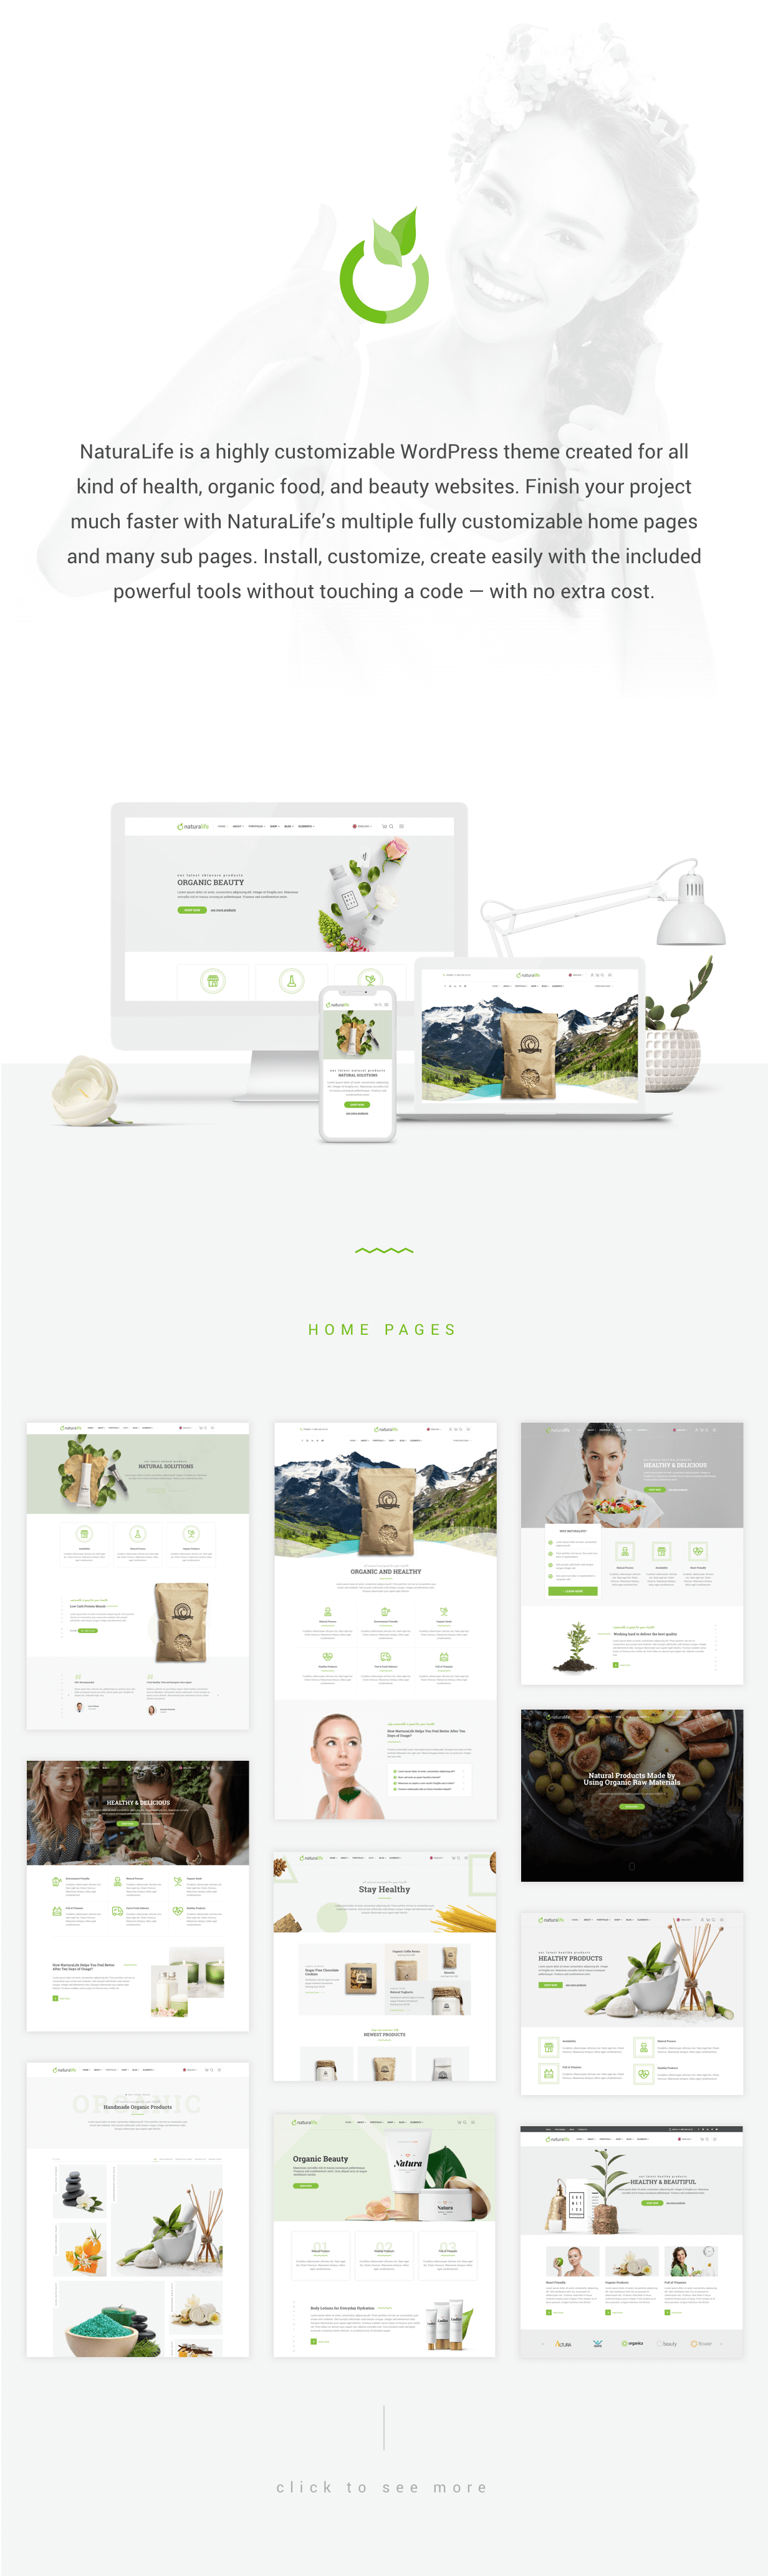 NaturaLife | Health & Organic WordPress Theme